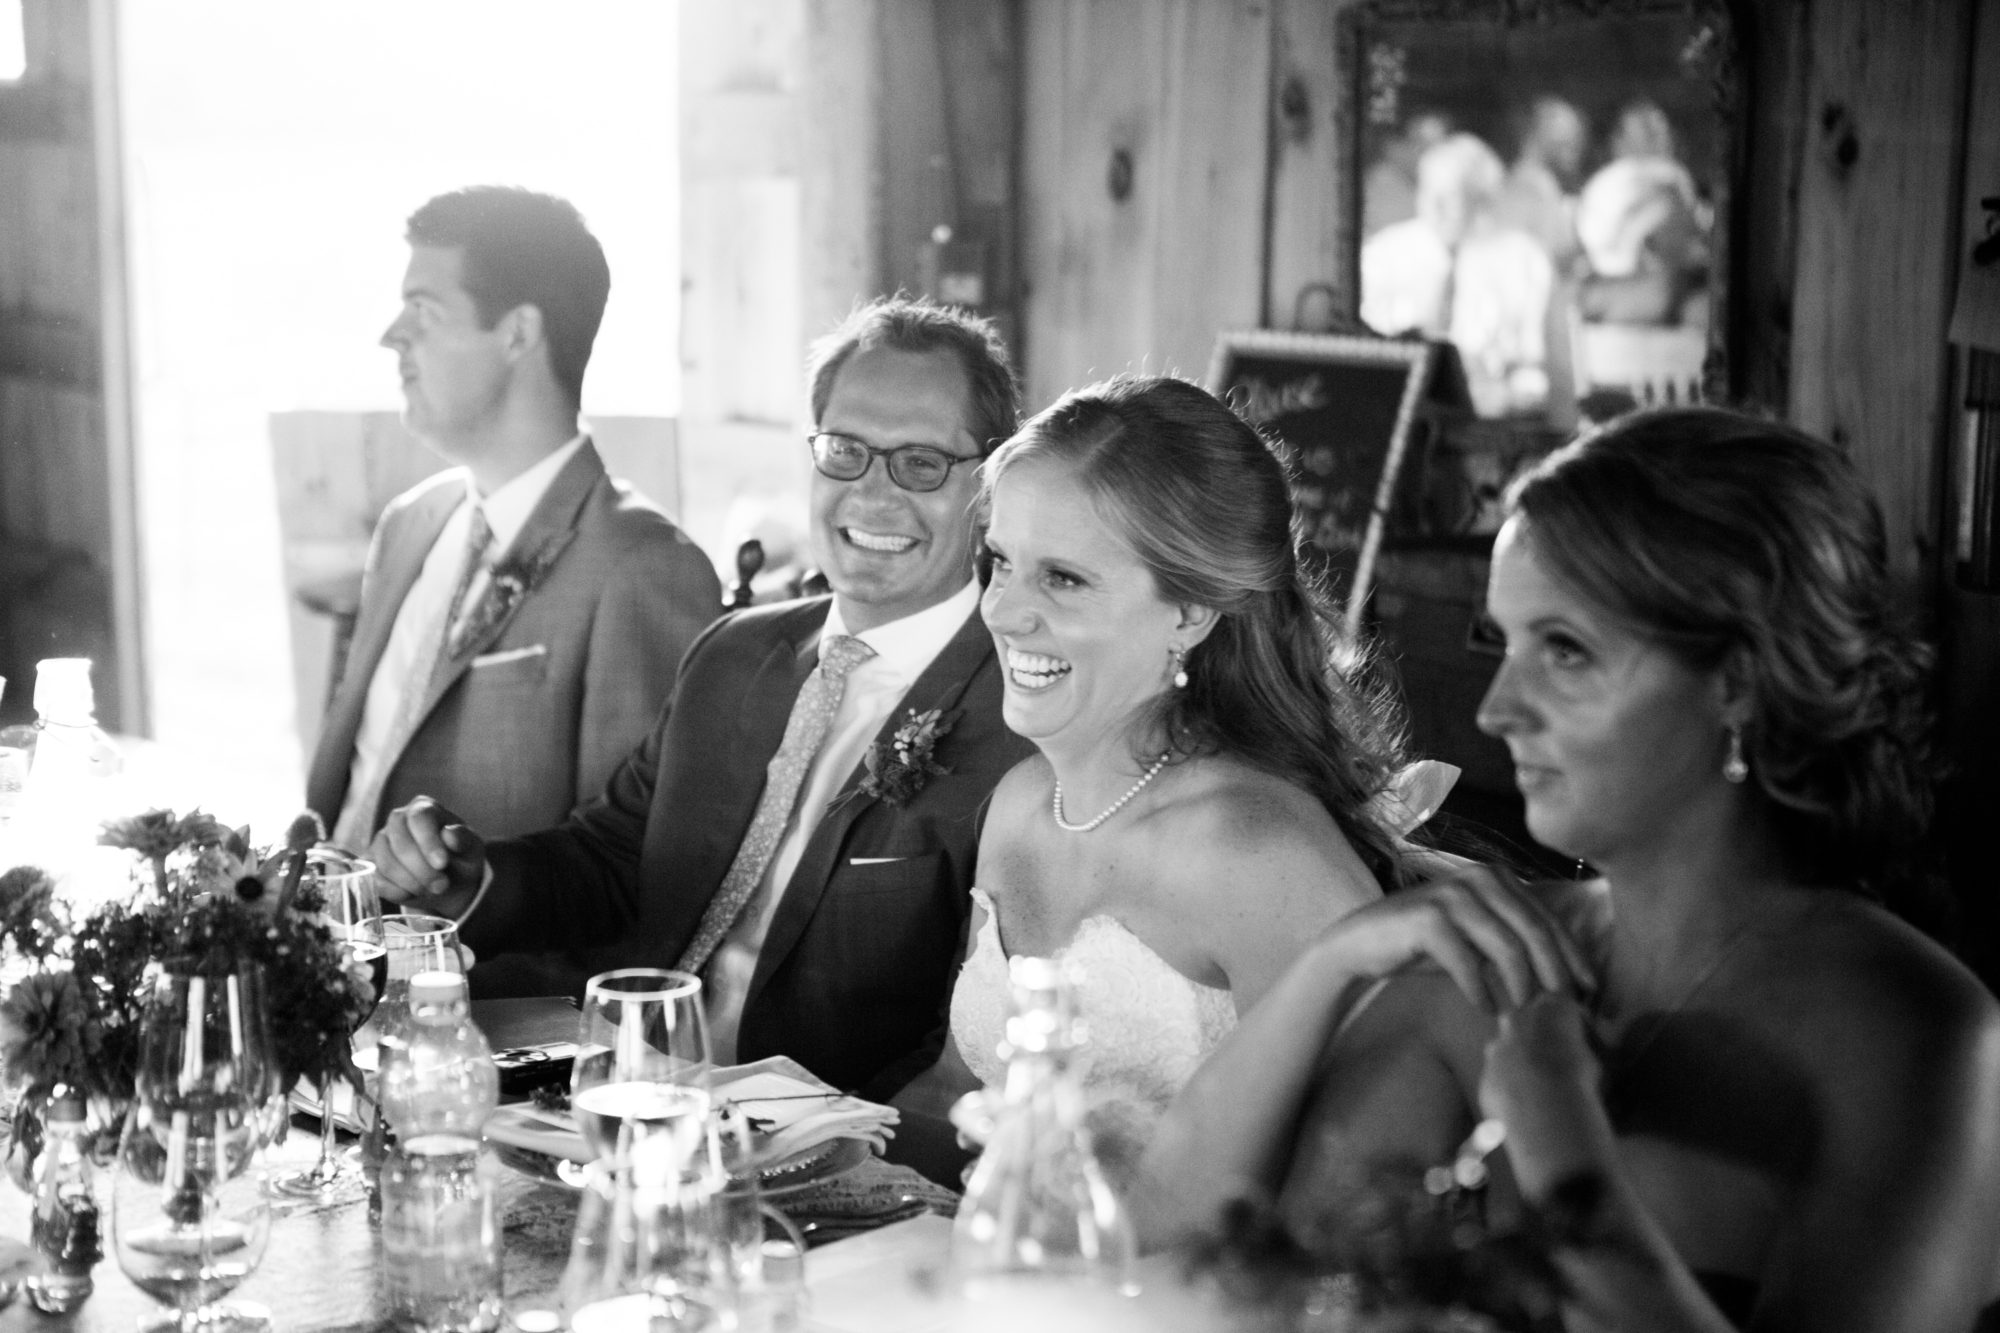 Bride Groom Black and White South Pond Farms Zsuzsi Pal Photography Wedding